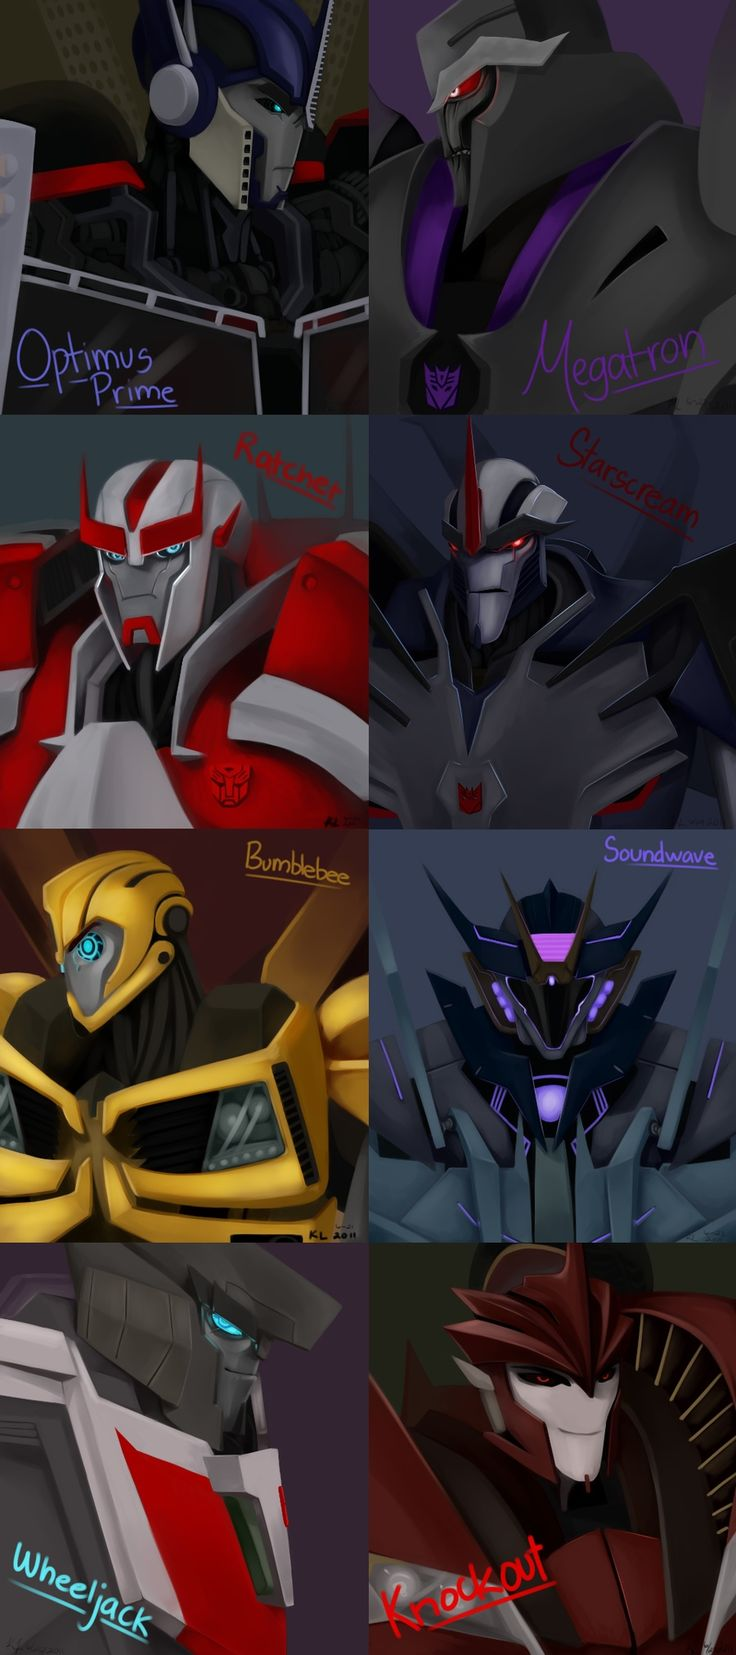 Optimus Prime, Megatron, Ratchet, Starscream, Bumblebee, Soundwave, Wheeljack, & Knock Out.